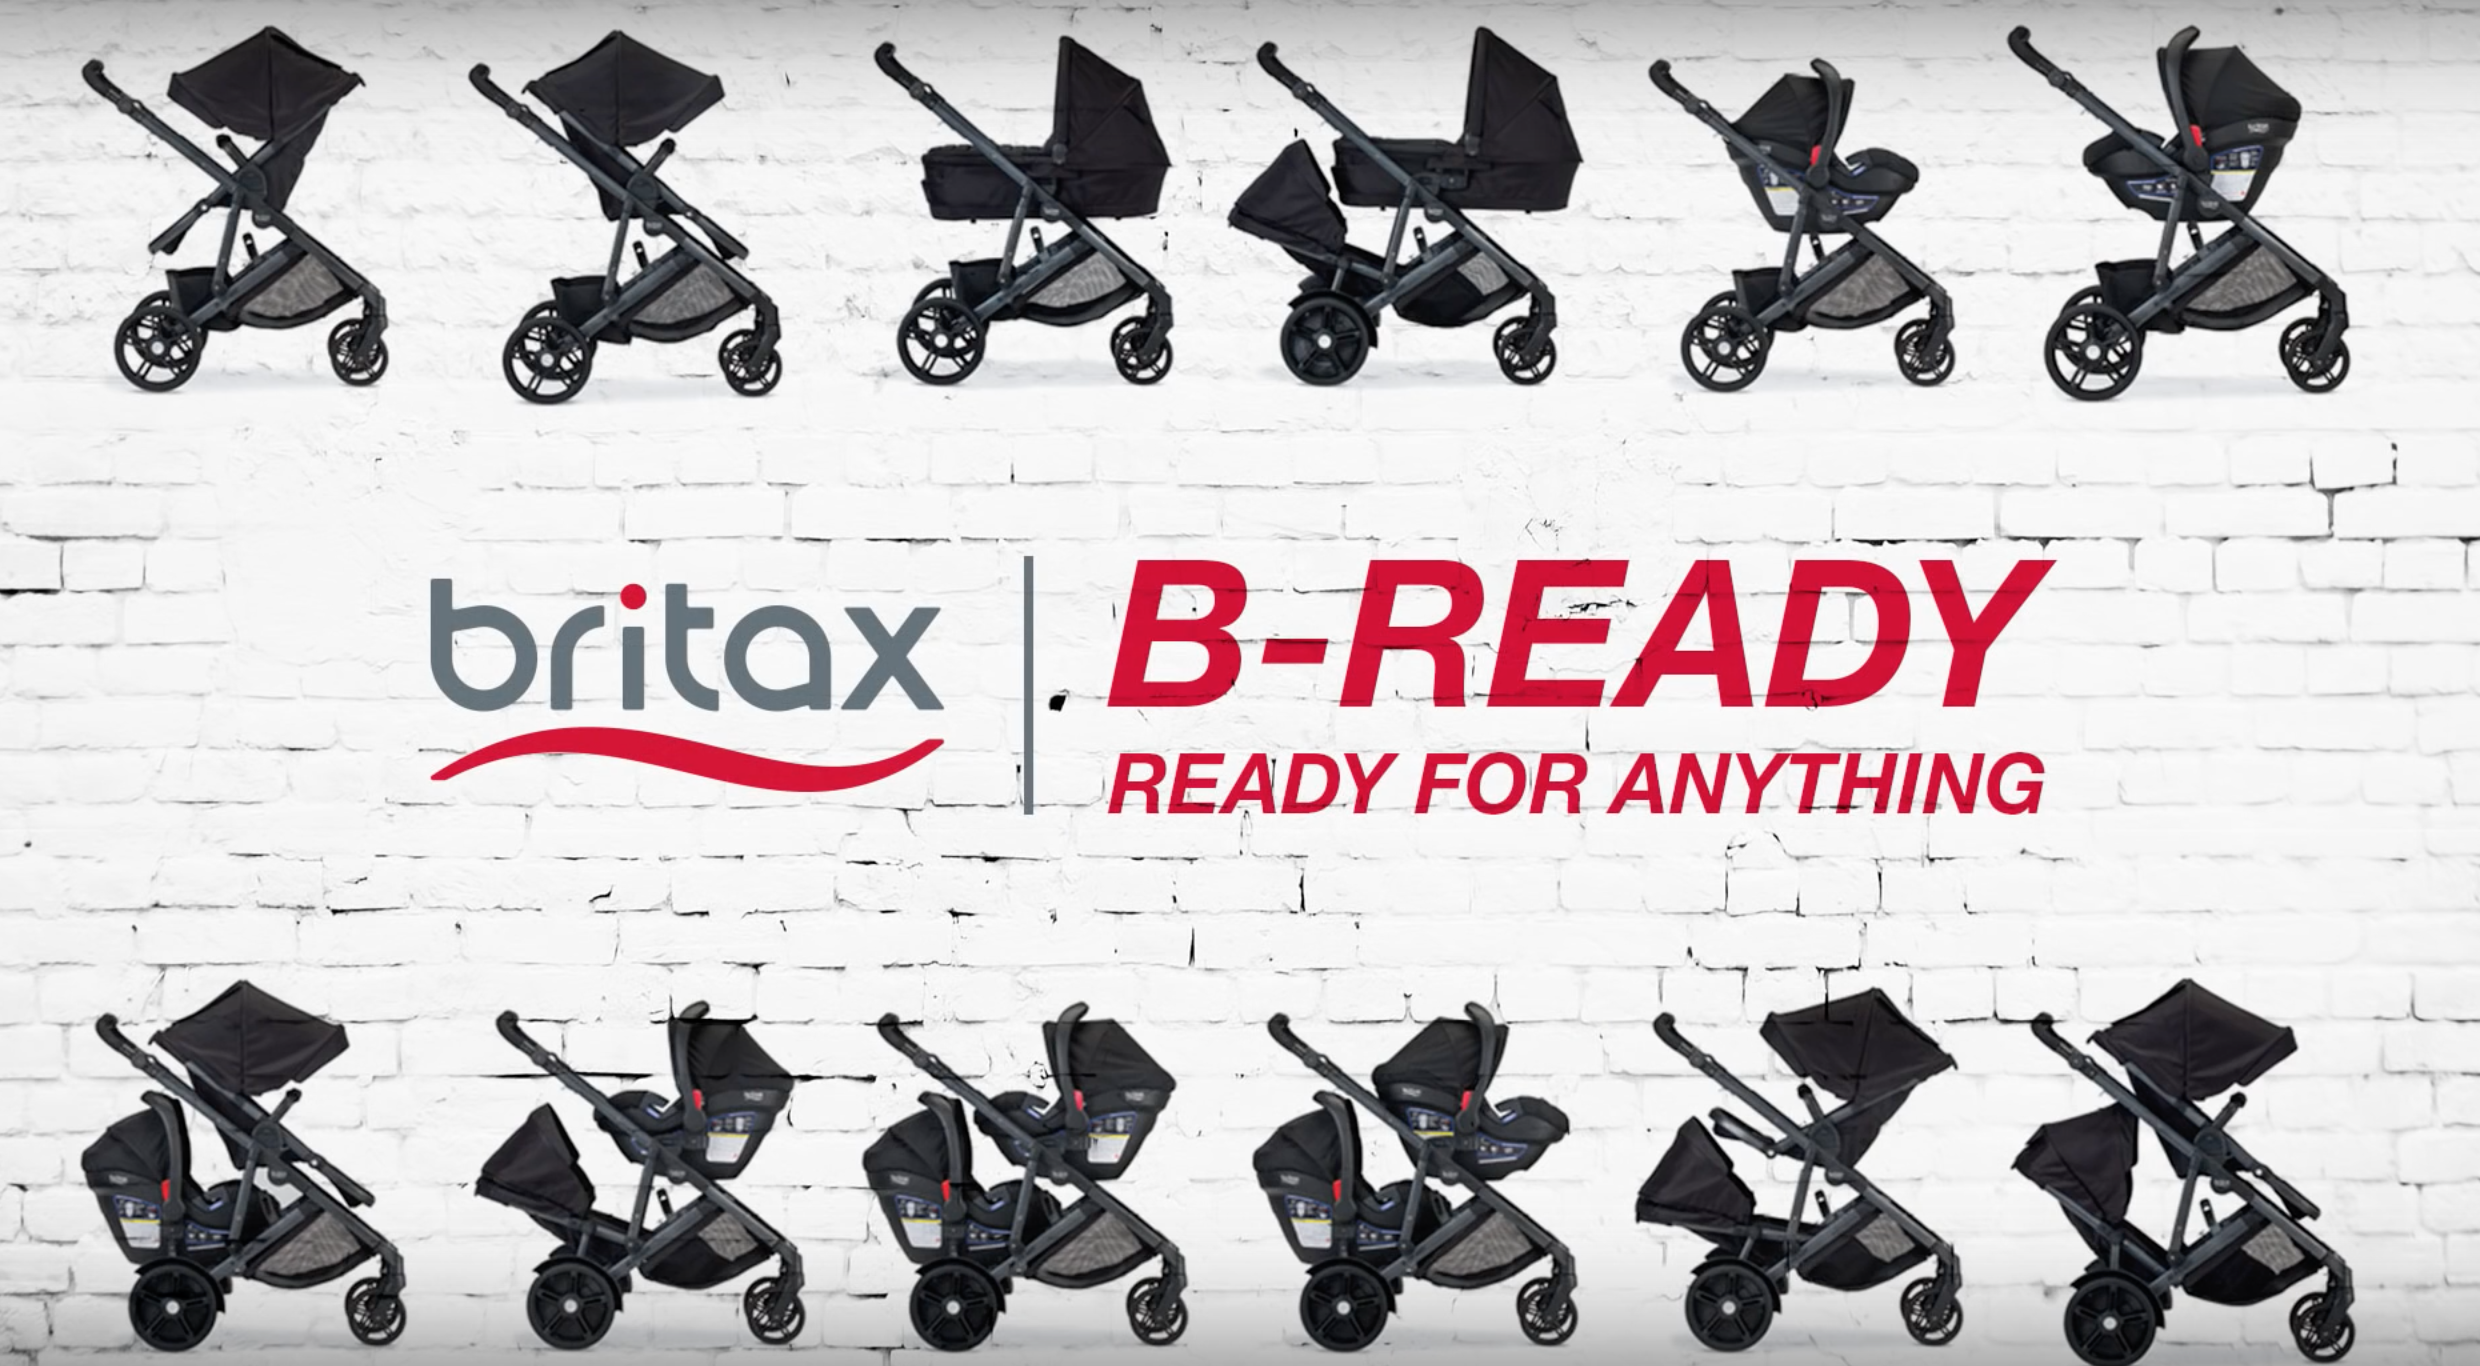 What's New About the 2017 Britax B-Ready Stroller